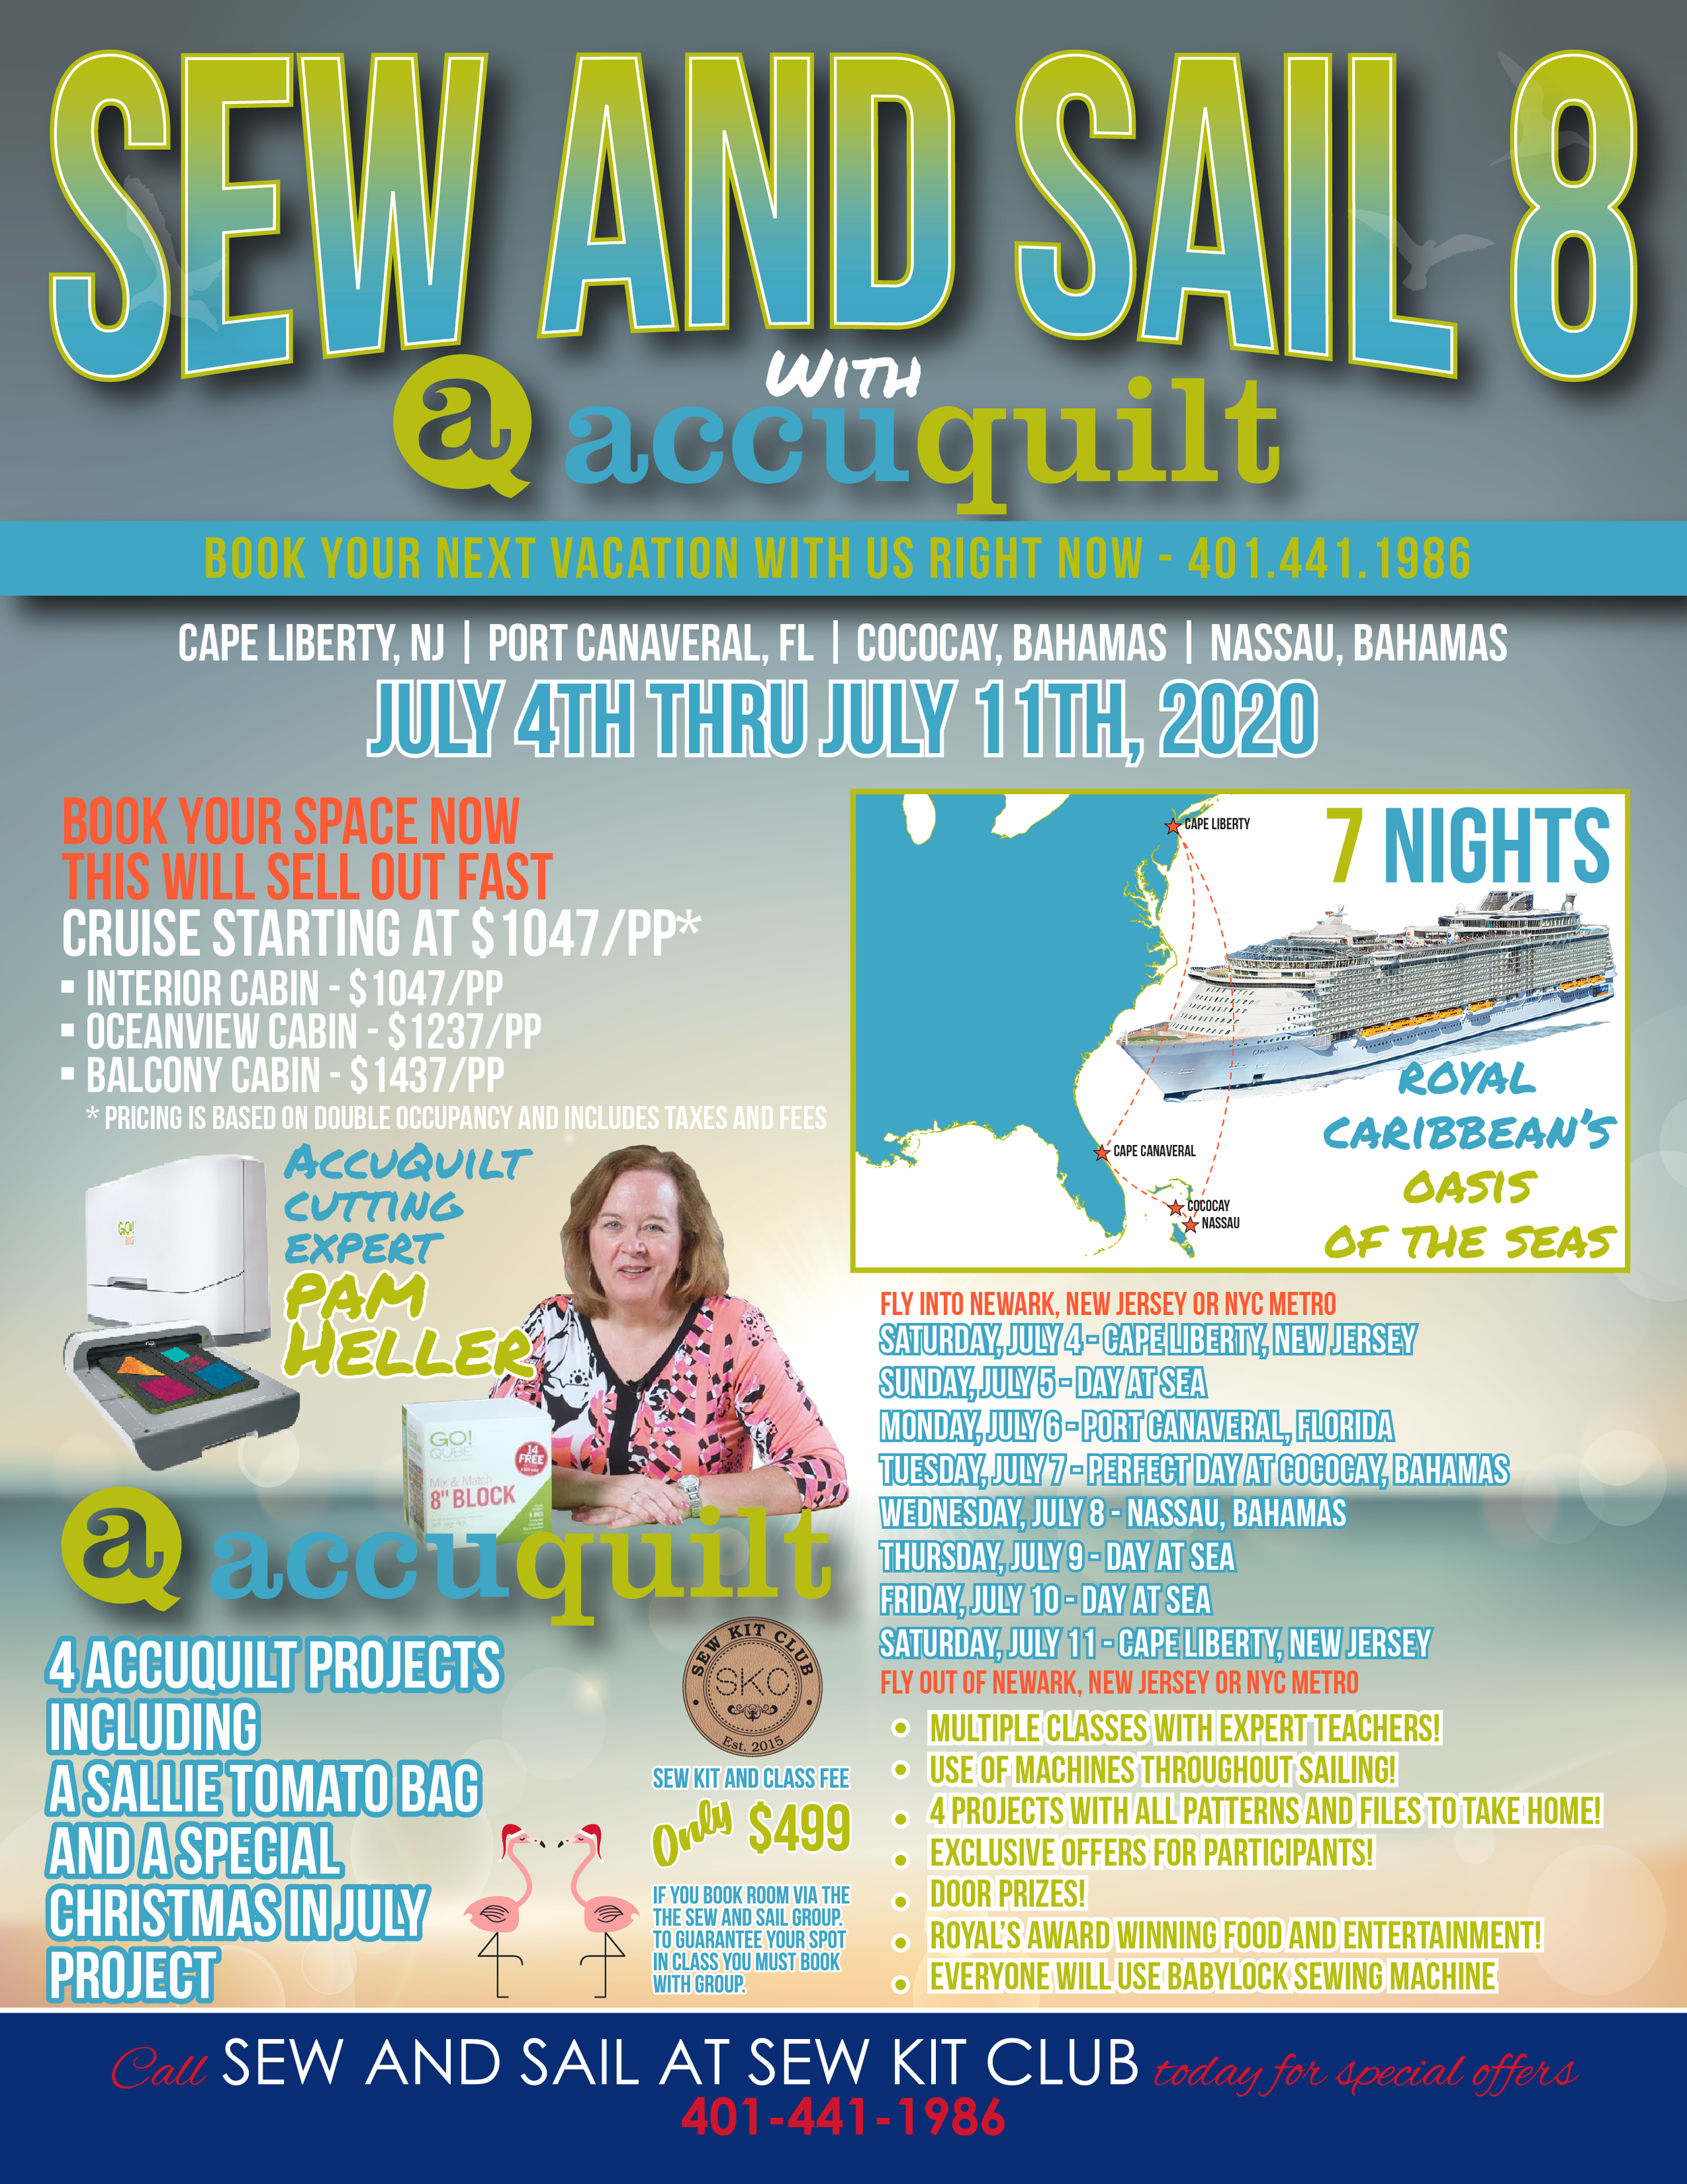 sew and sail 8 flyer 2.png